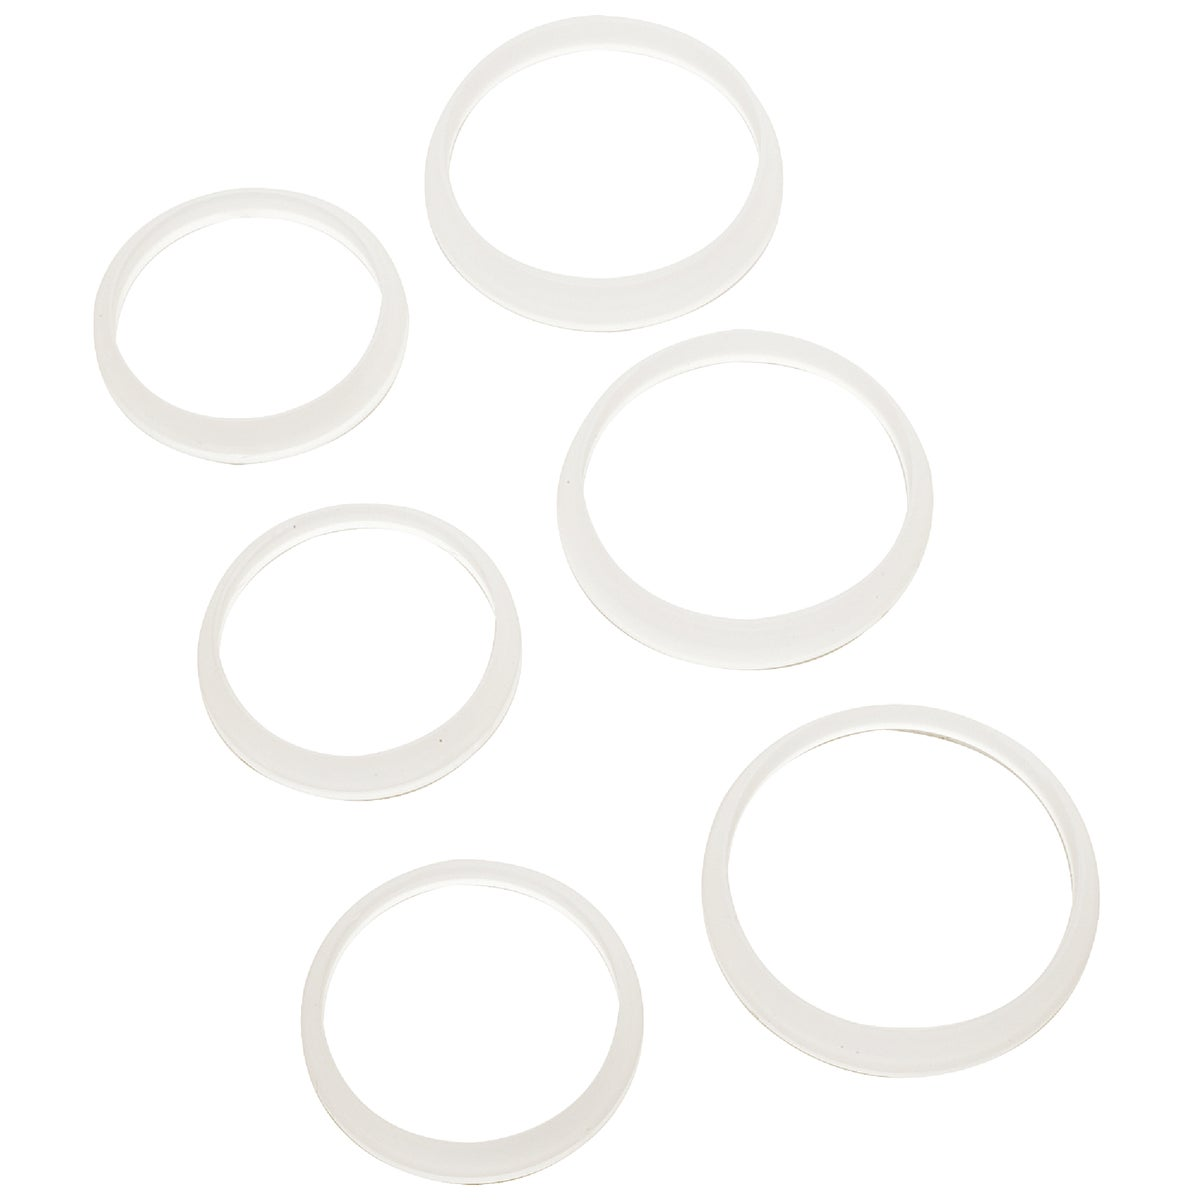 6PK POLY S/J WASHERS - 416213 by Plumb Pak/keeney Mfg